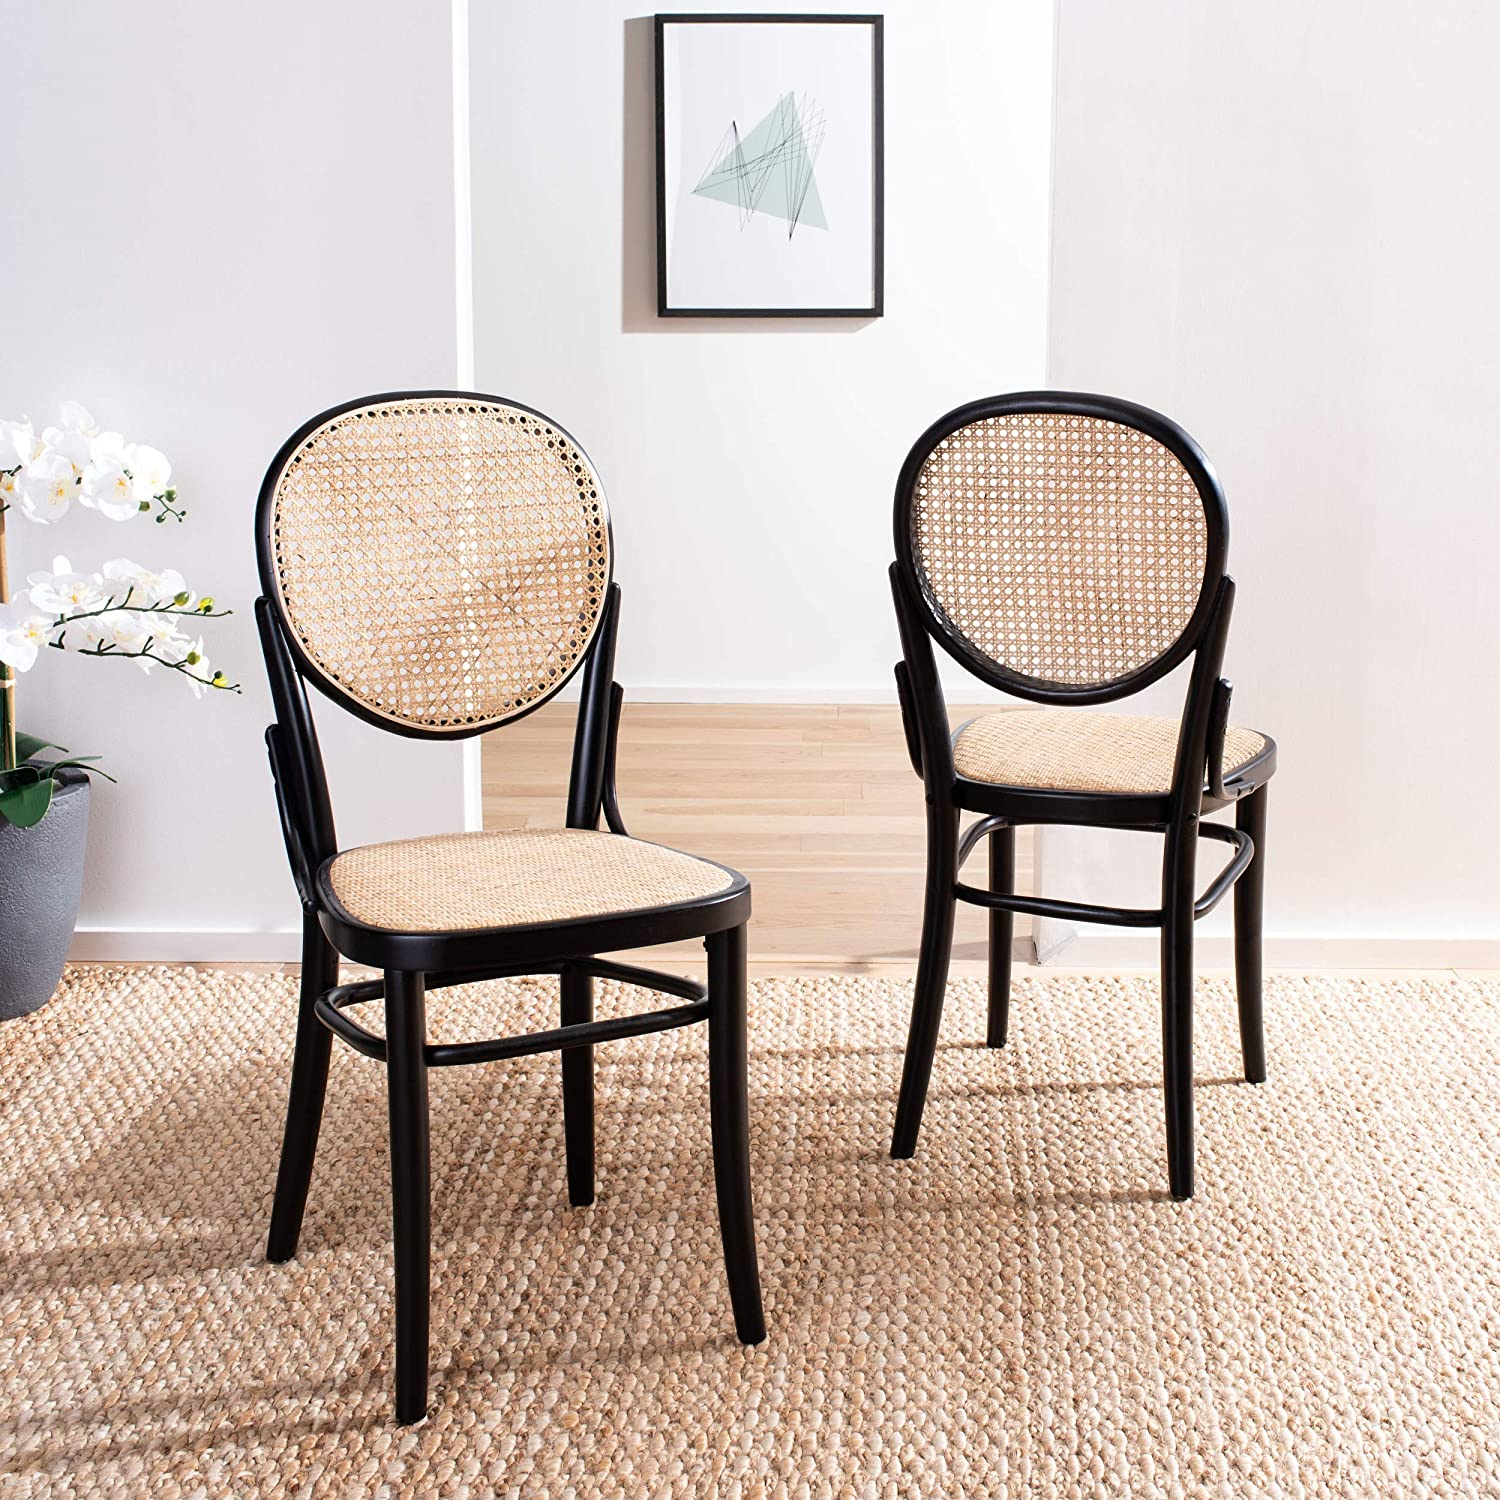 Safavieh Home Sonia Black and Natural Cane (Set of 2) Dining Chair,